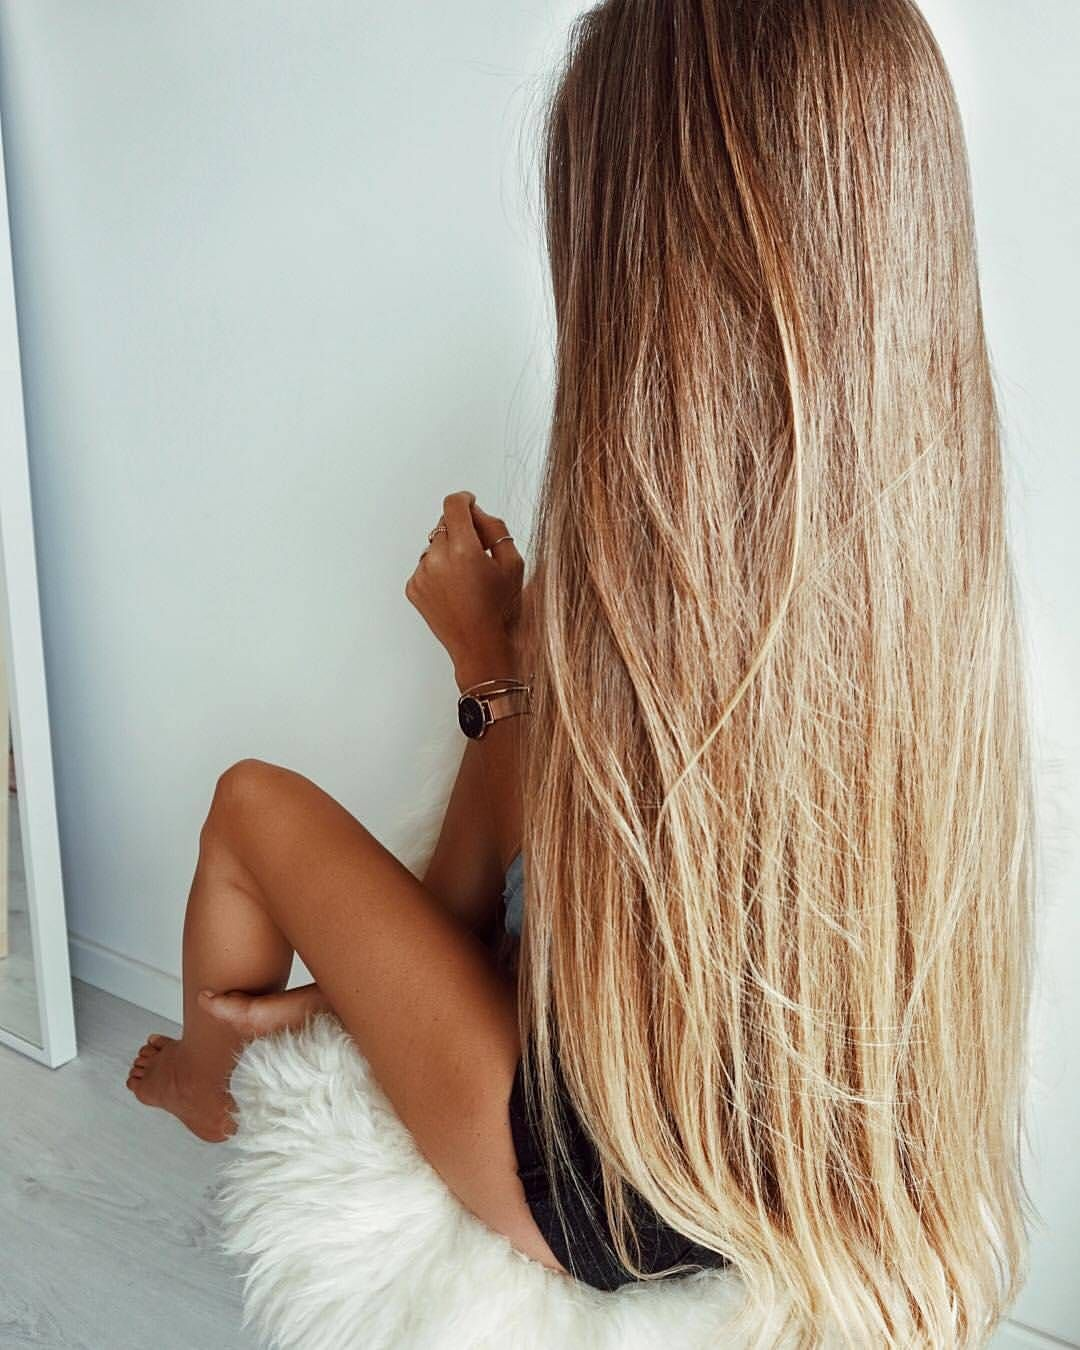 Pin by Kailei Parker on Hair in Pinterest Hair Hair styles